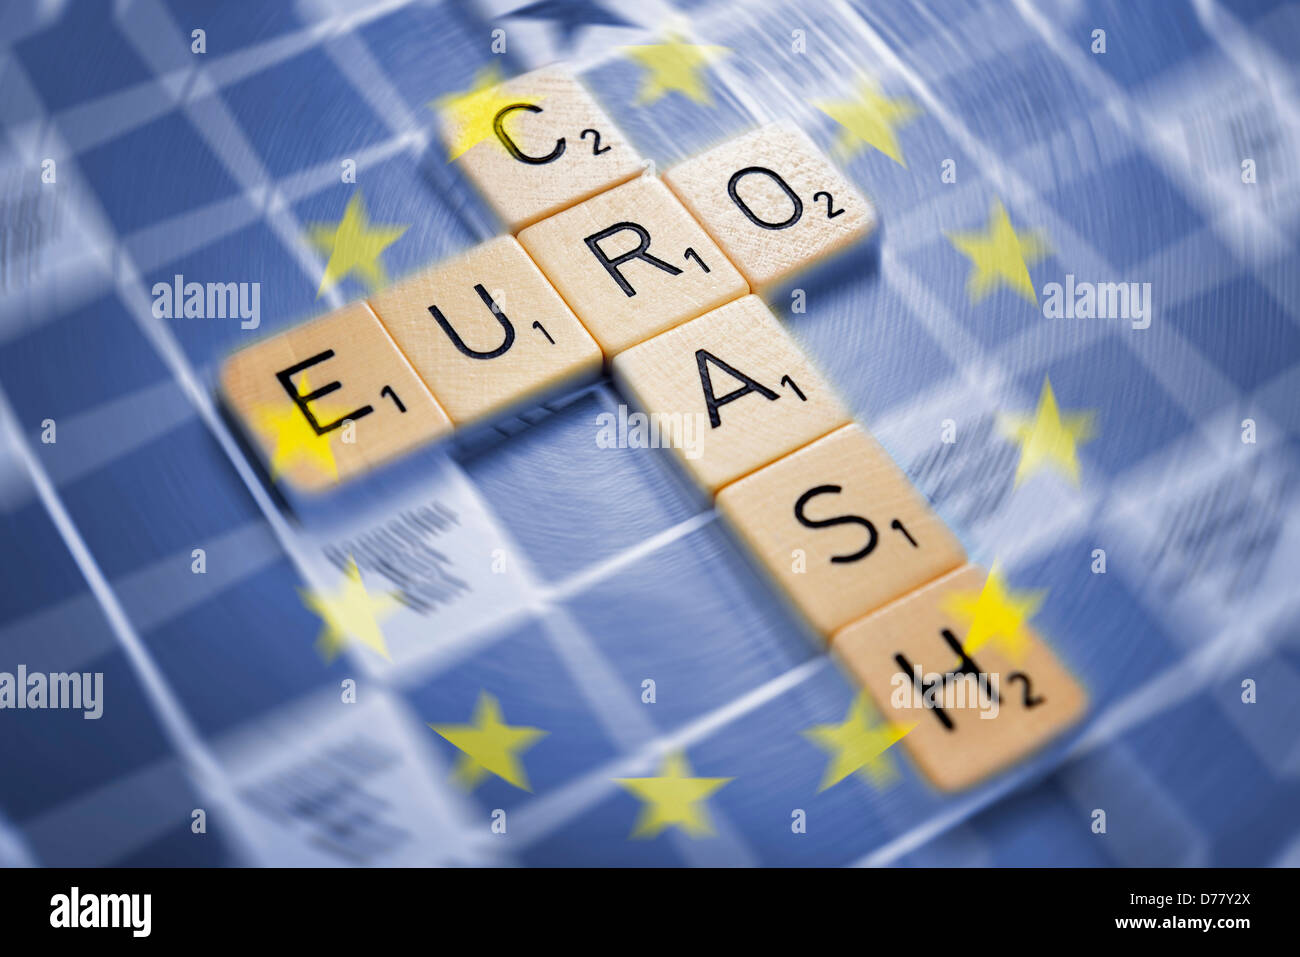 Stroke eurocrash on a play board Stock Photo